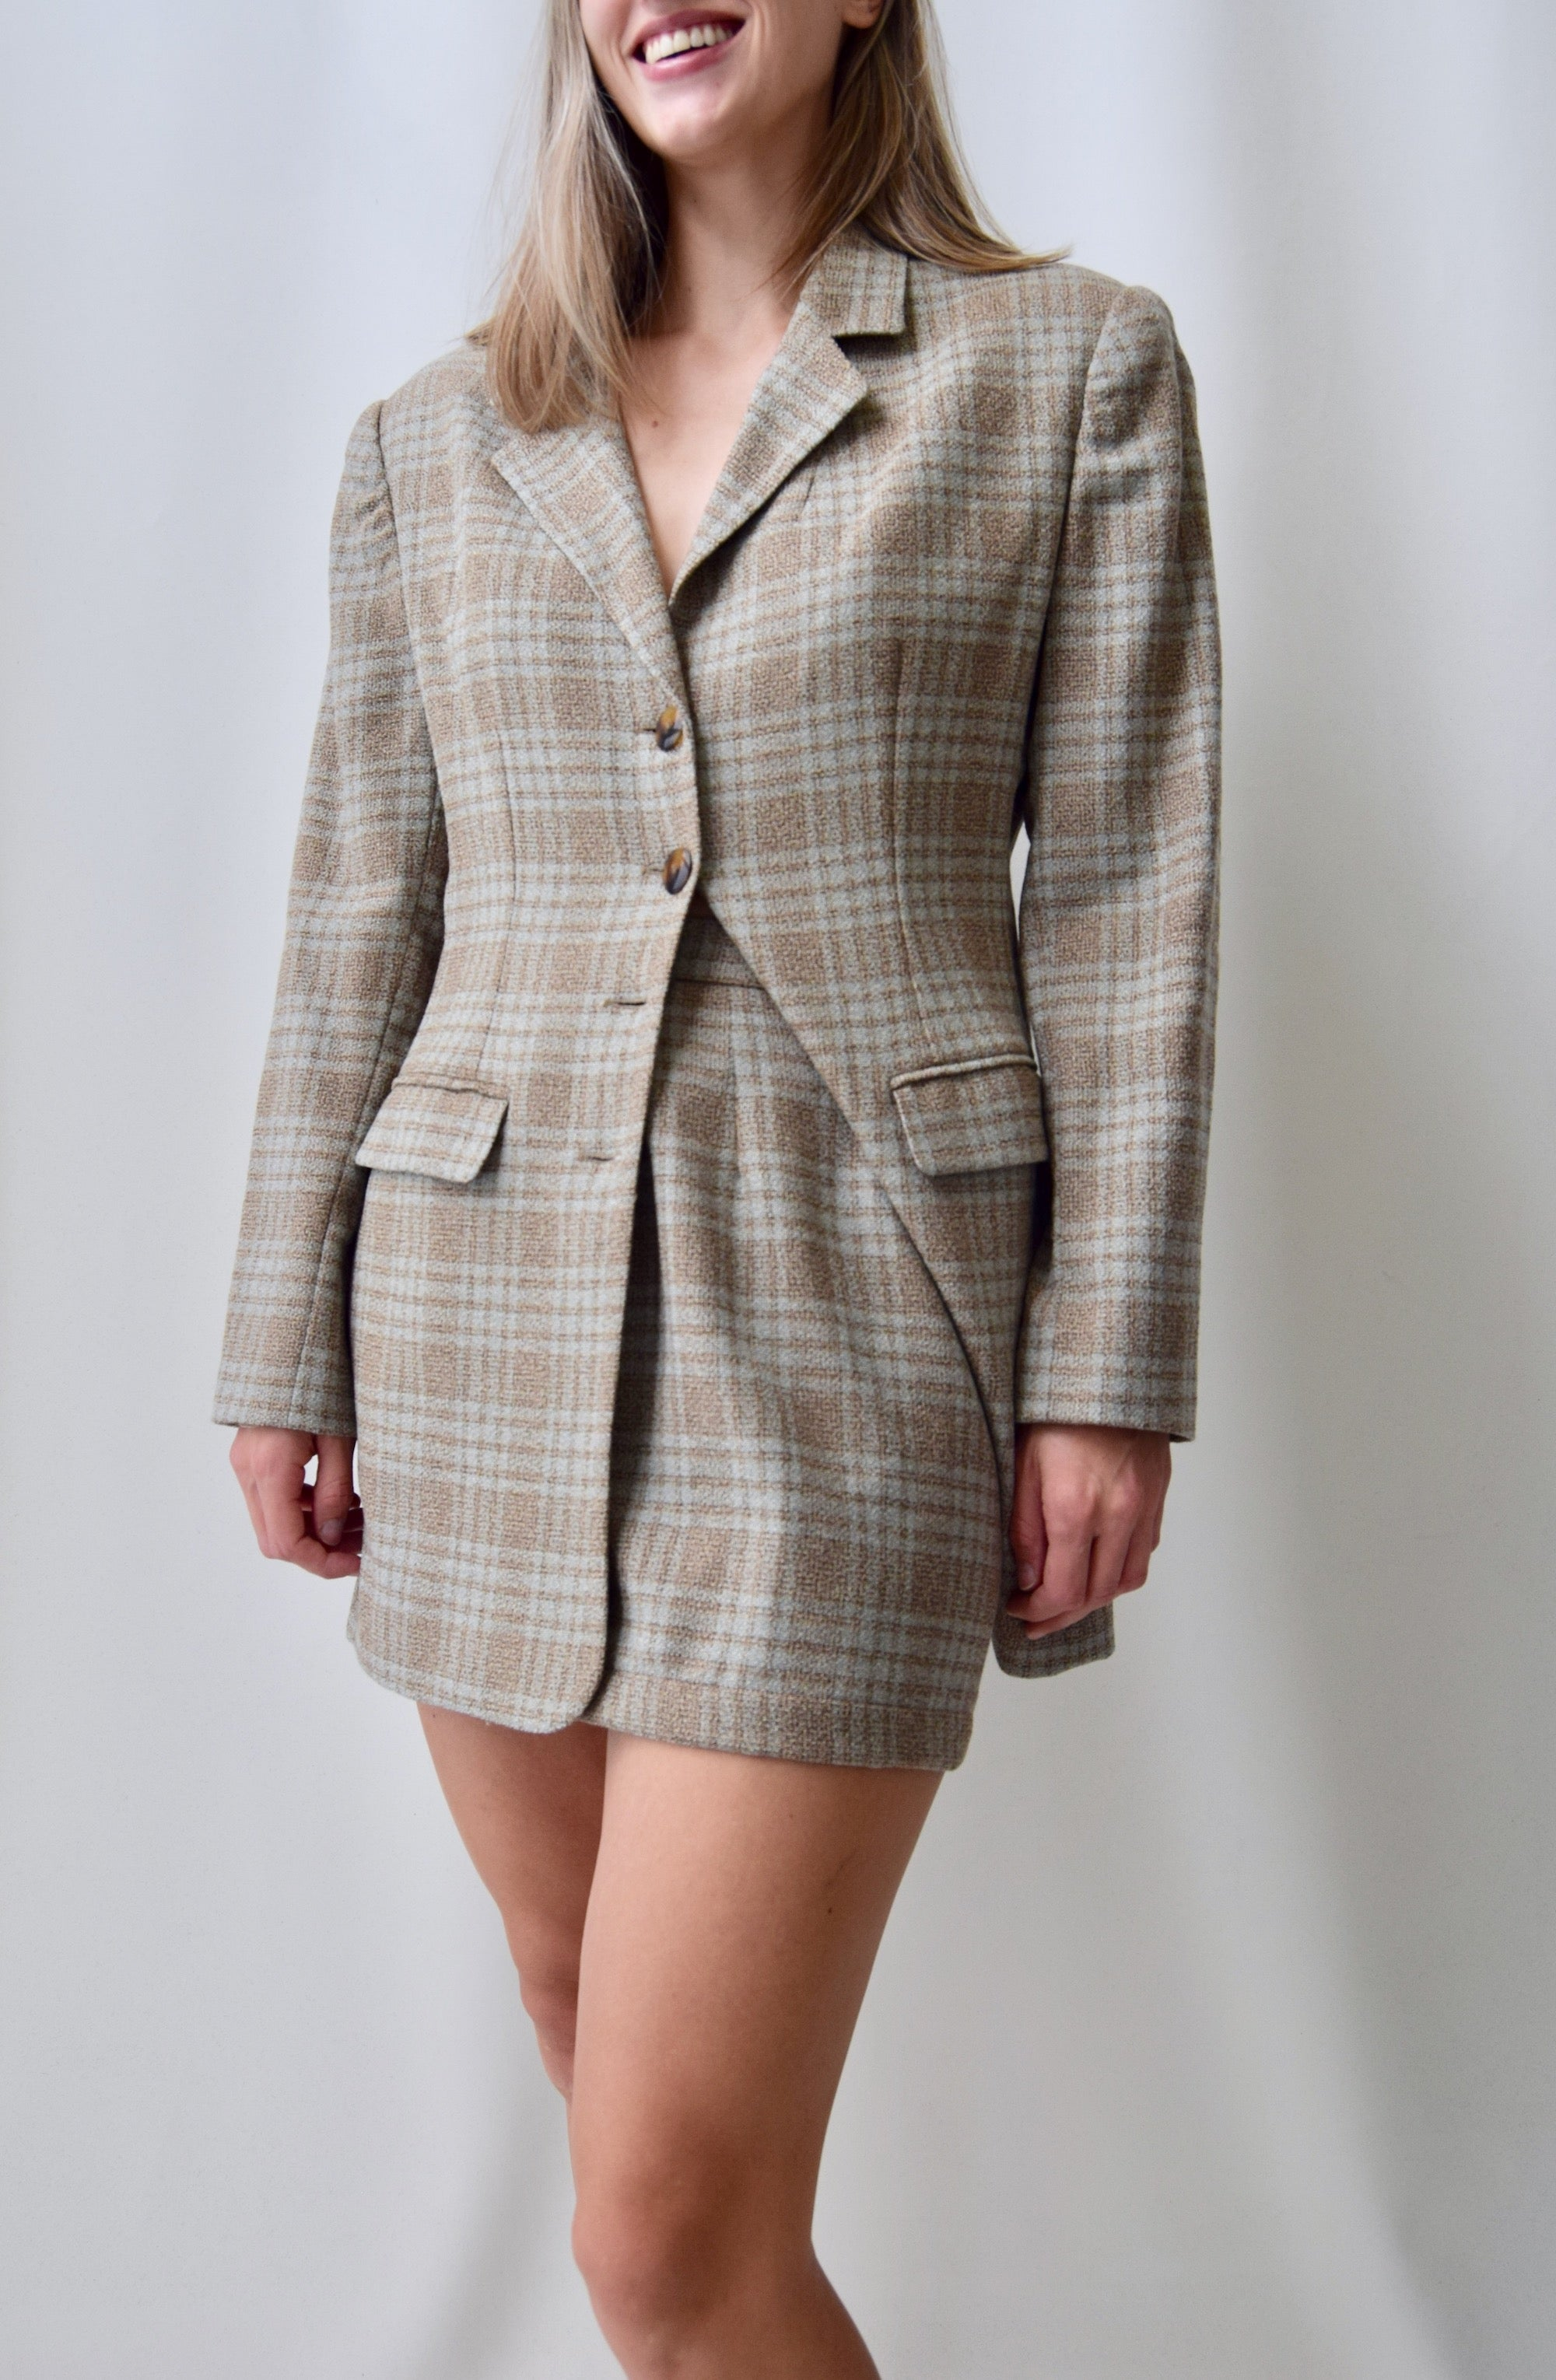 Nineties Plaid Wool Mini Skirt Suit